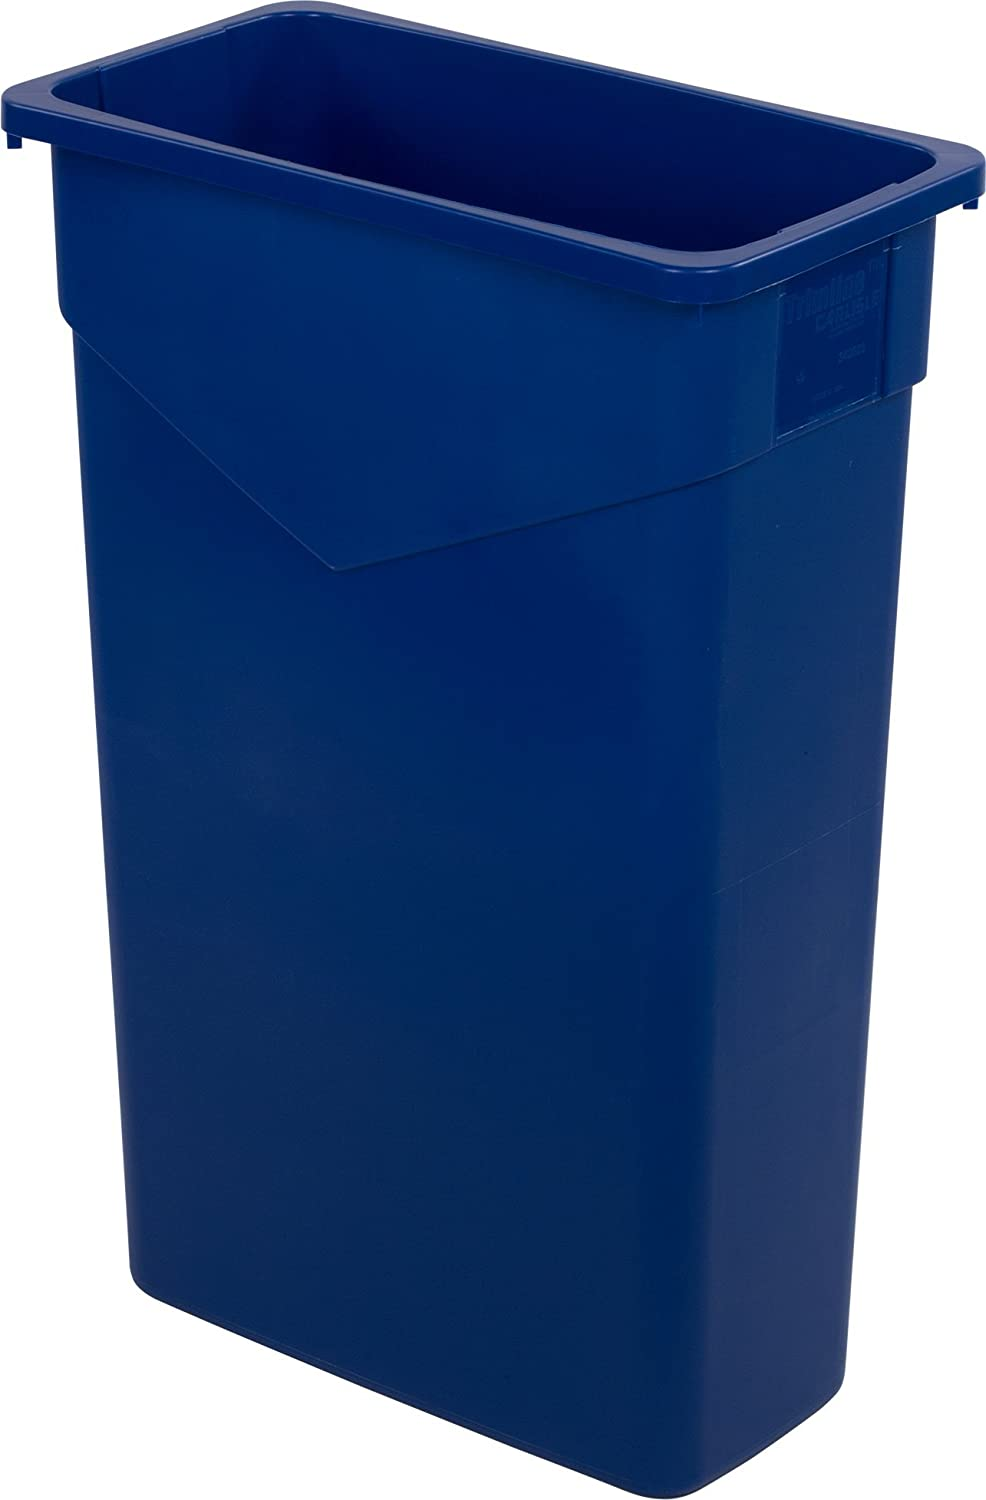 Carlisle 34201523 TrimLine Rectangle Waste Container Trash Can Only, 15 Gallon, Gray Carlisle Corporation